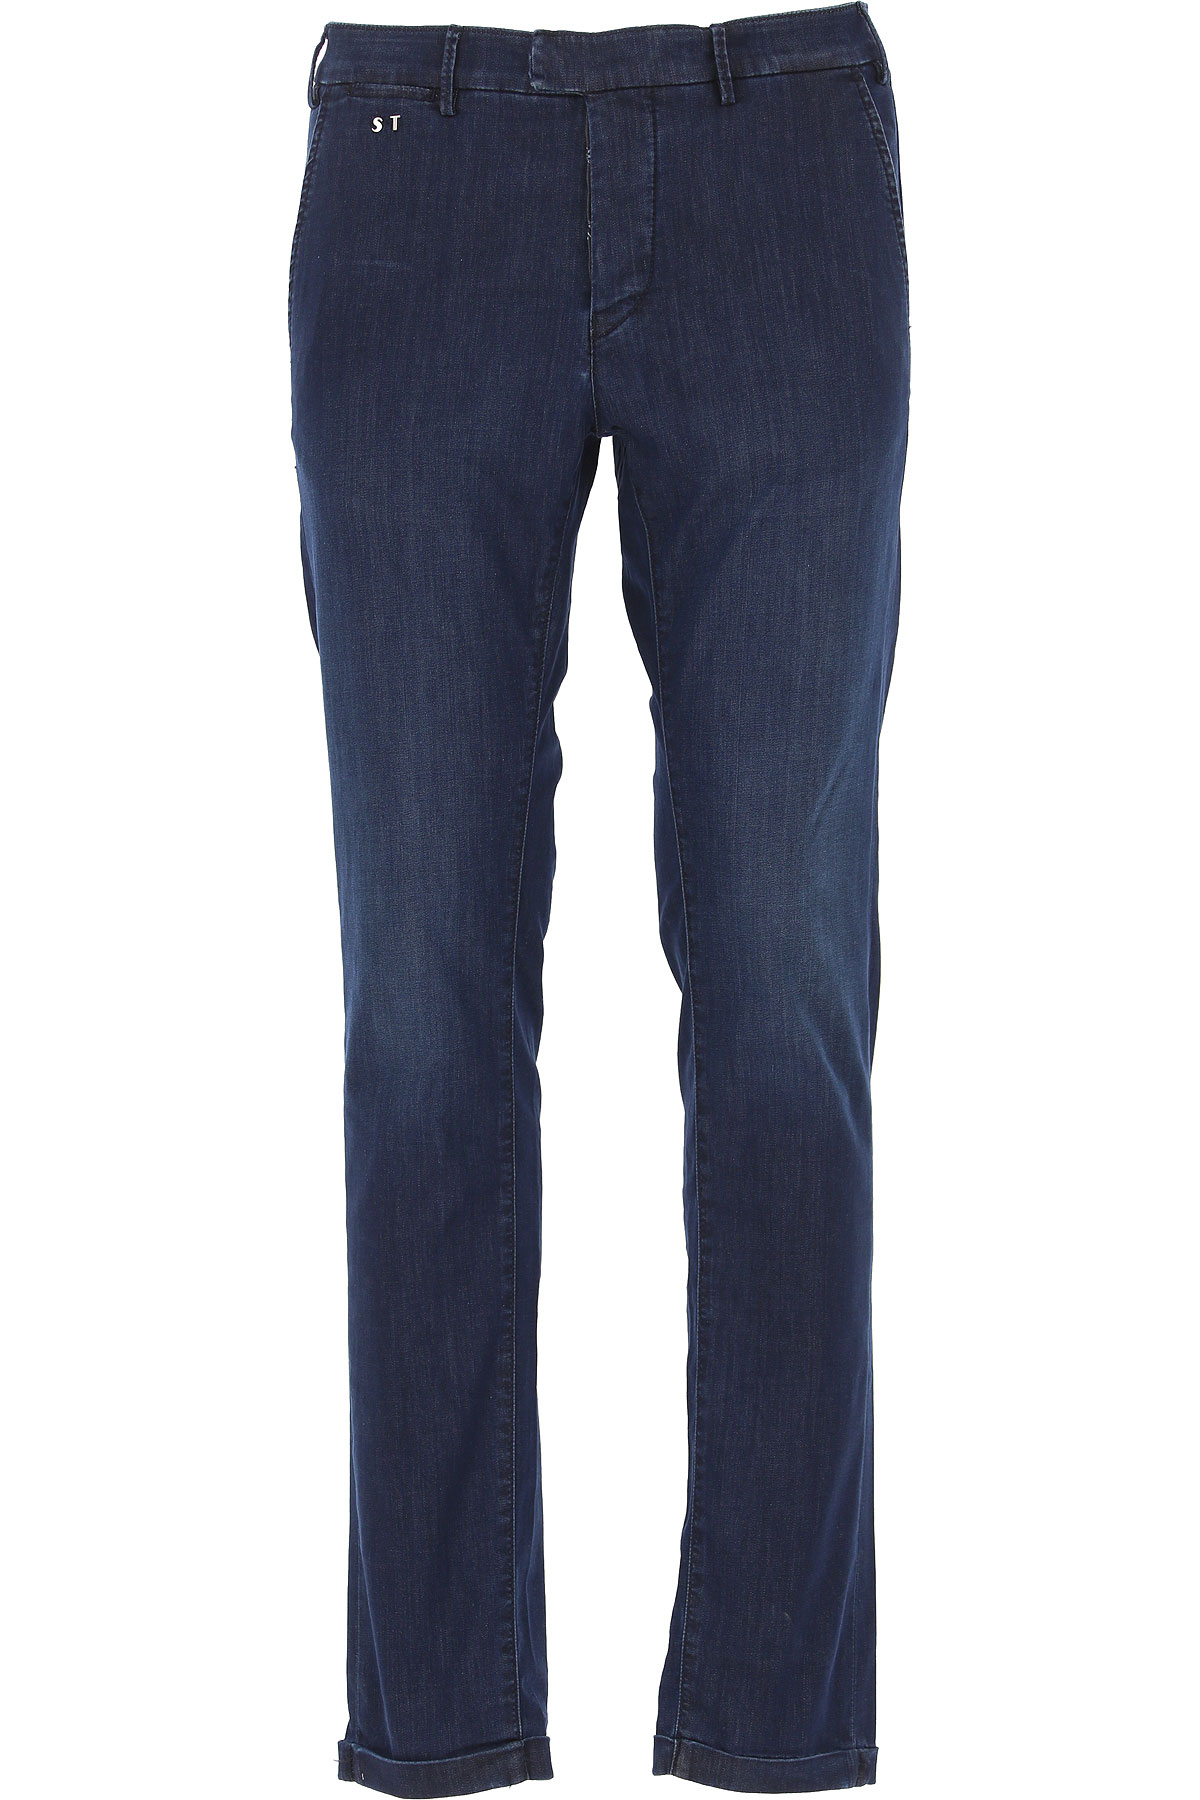 Entre Amis Pants for Men, Midnight Blue, Cotton, 2019, 32 33 40